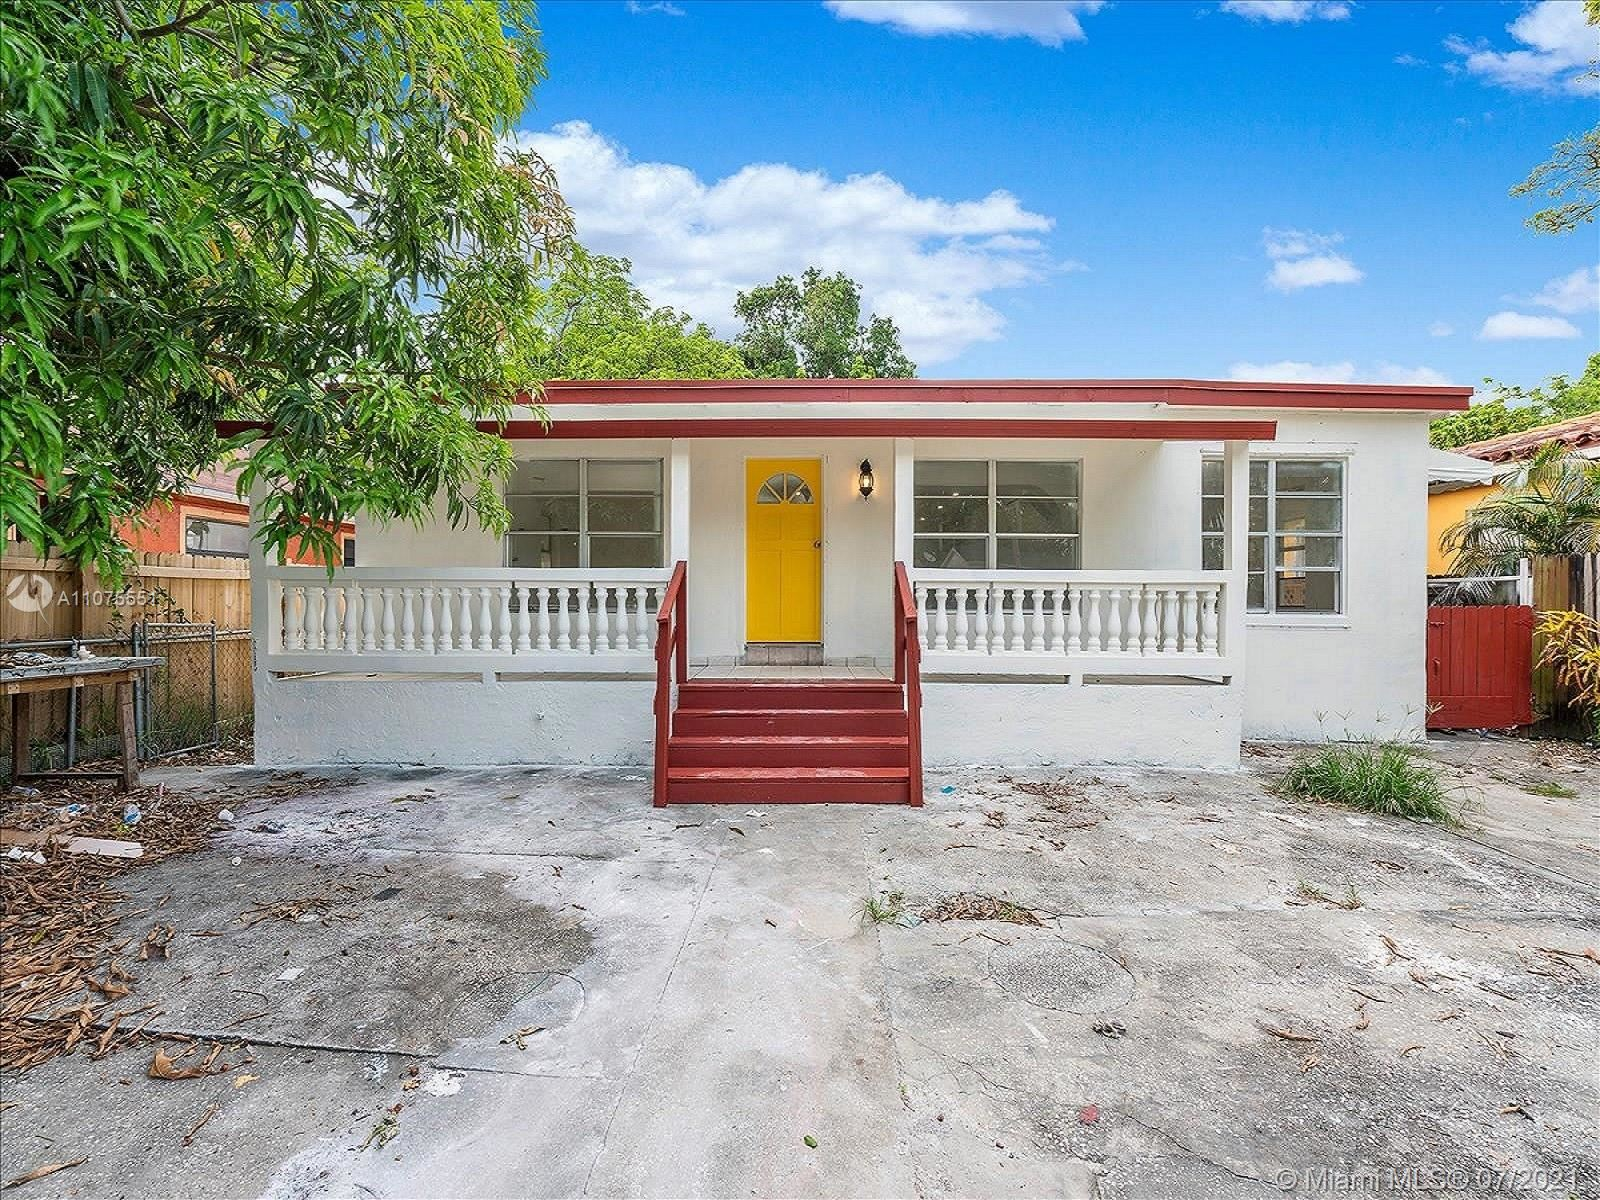 Photo of 844 NW 115th St, Miami, FL 33168 (MLS # A11075551)